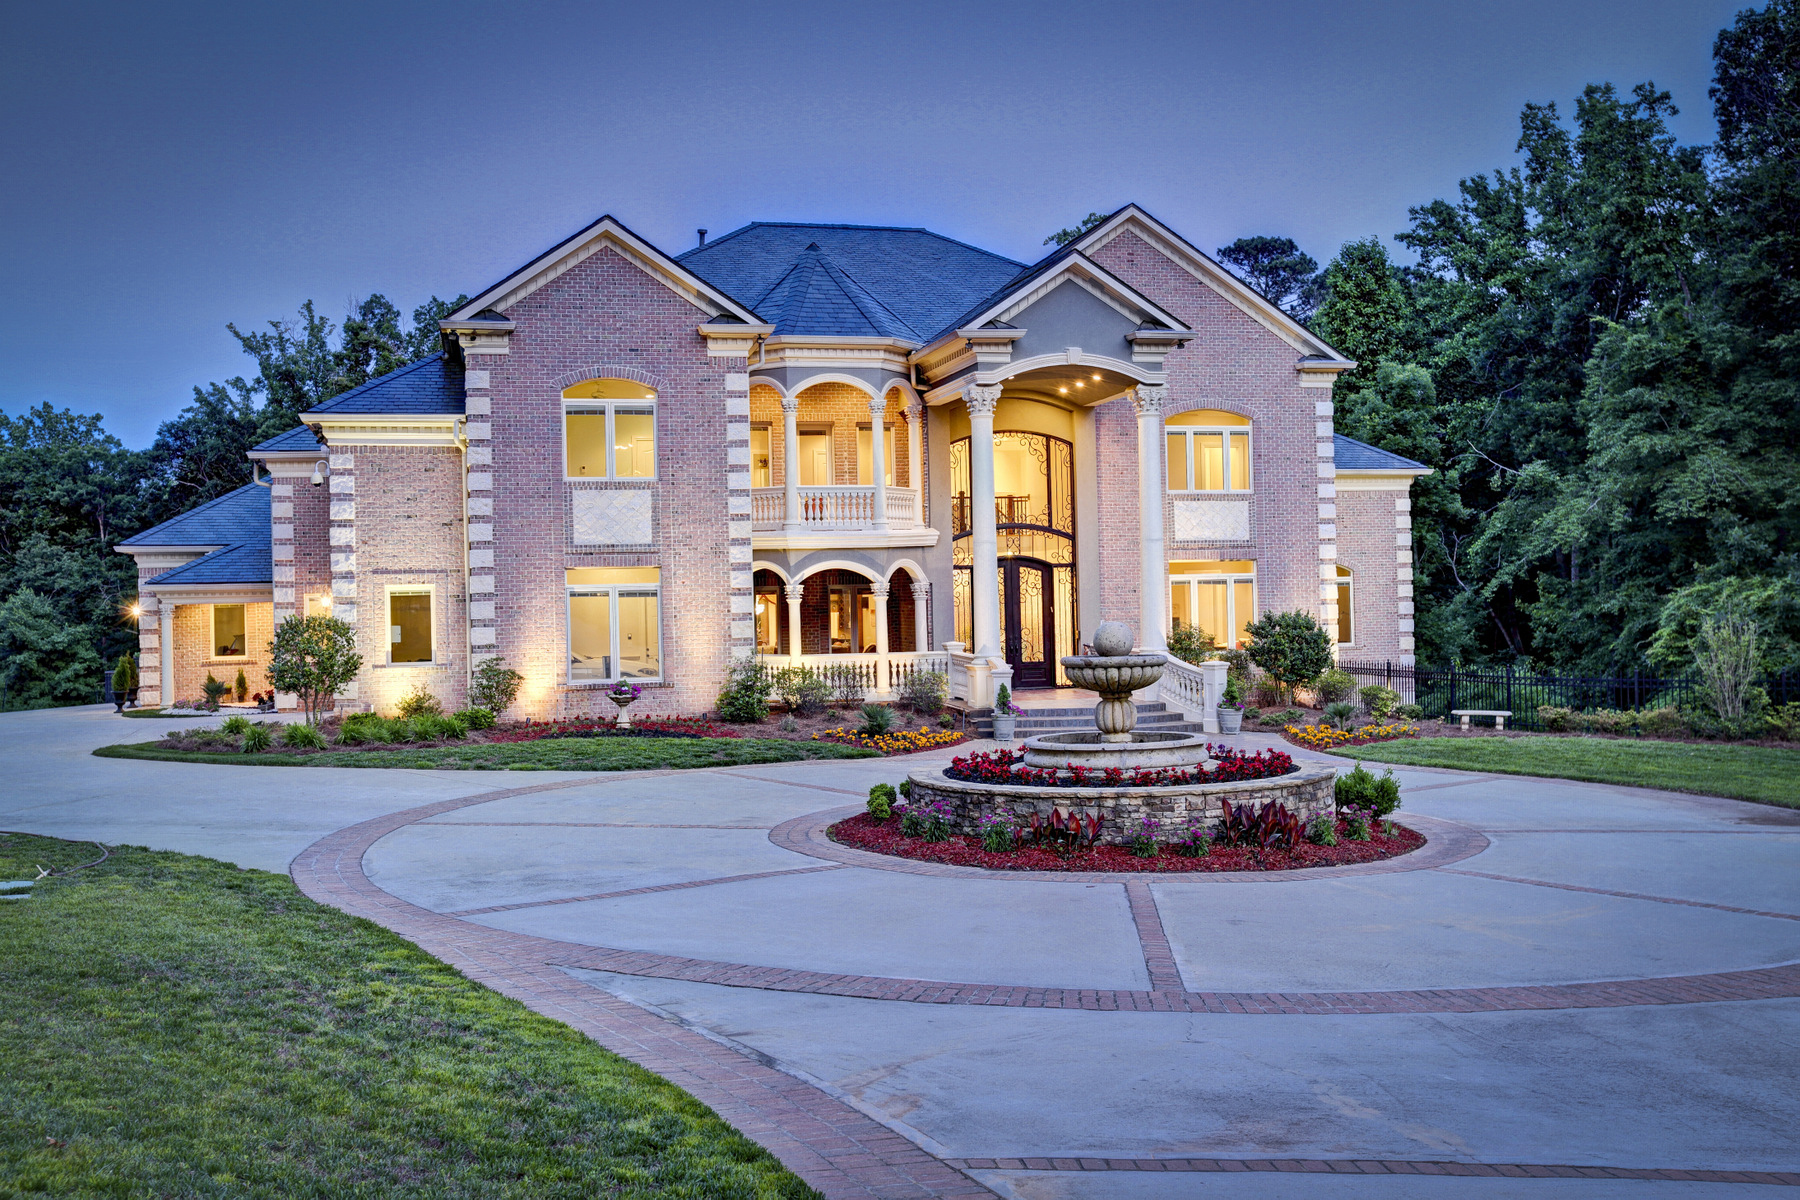 Casa Unifamiliar por un Venta en Stunning Private Estate 1625 Sunnybrook Farm Road Sandy Springs, Georgia, 30350 Estados Unidos